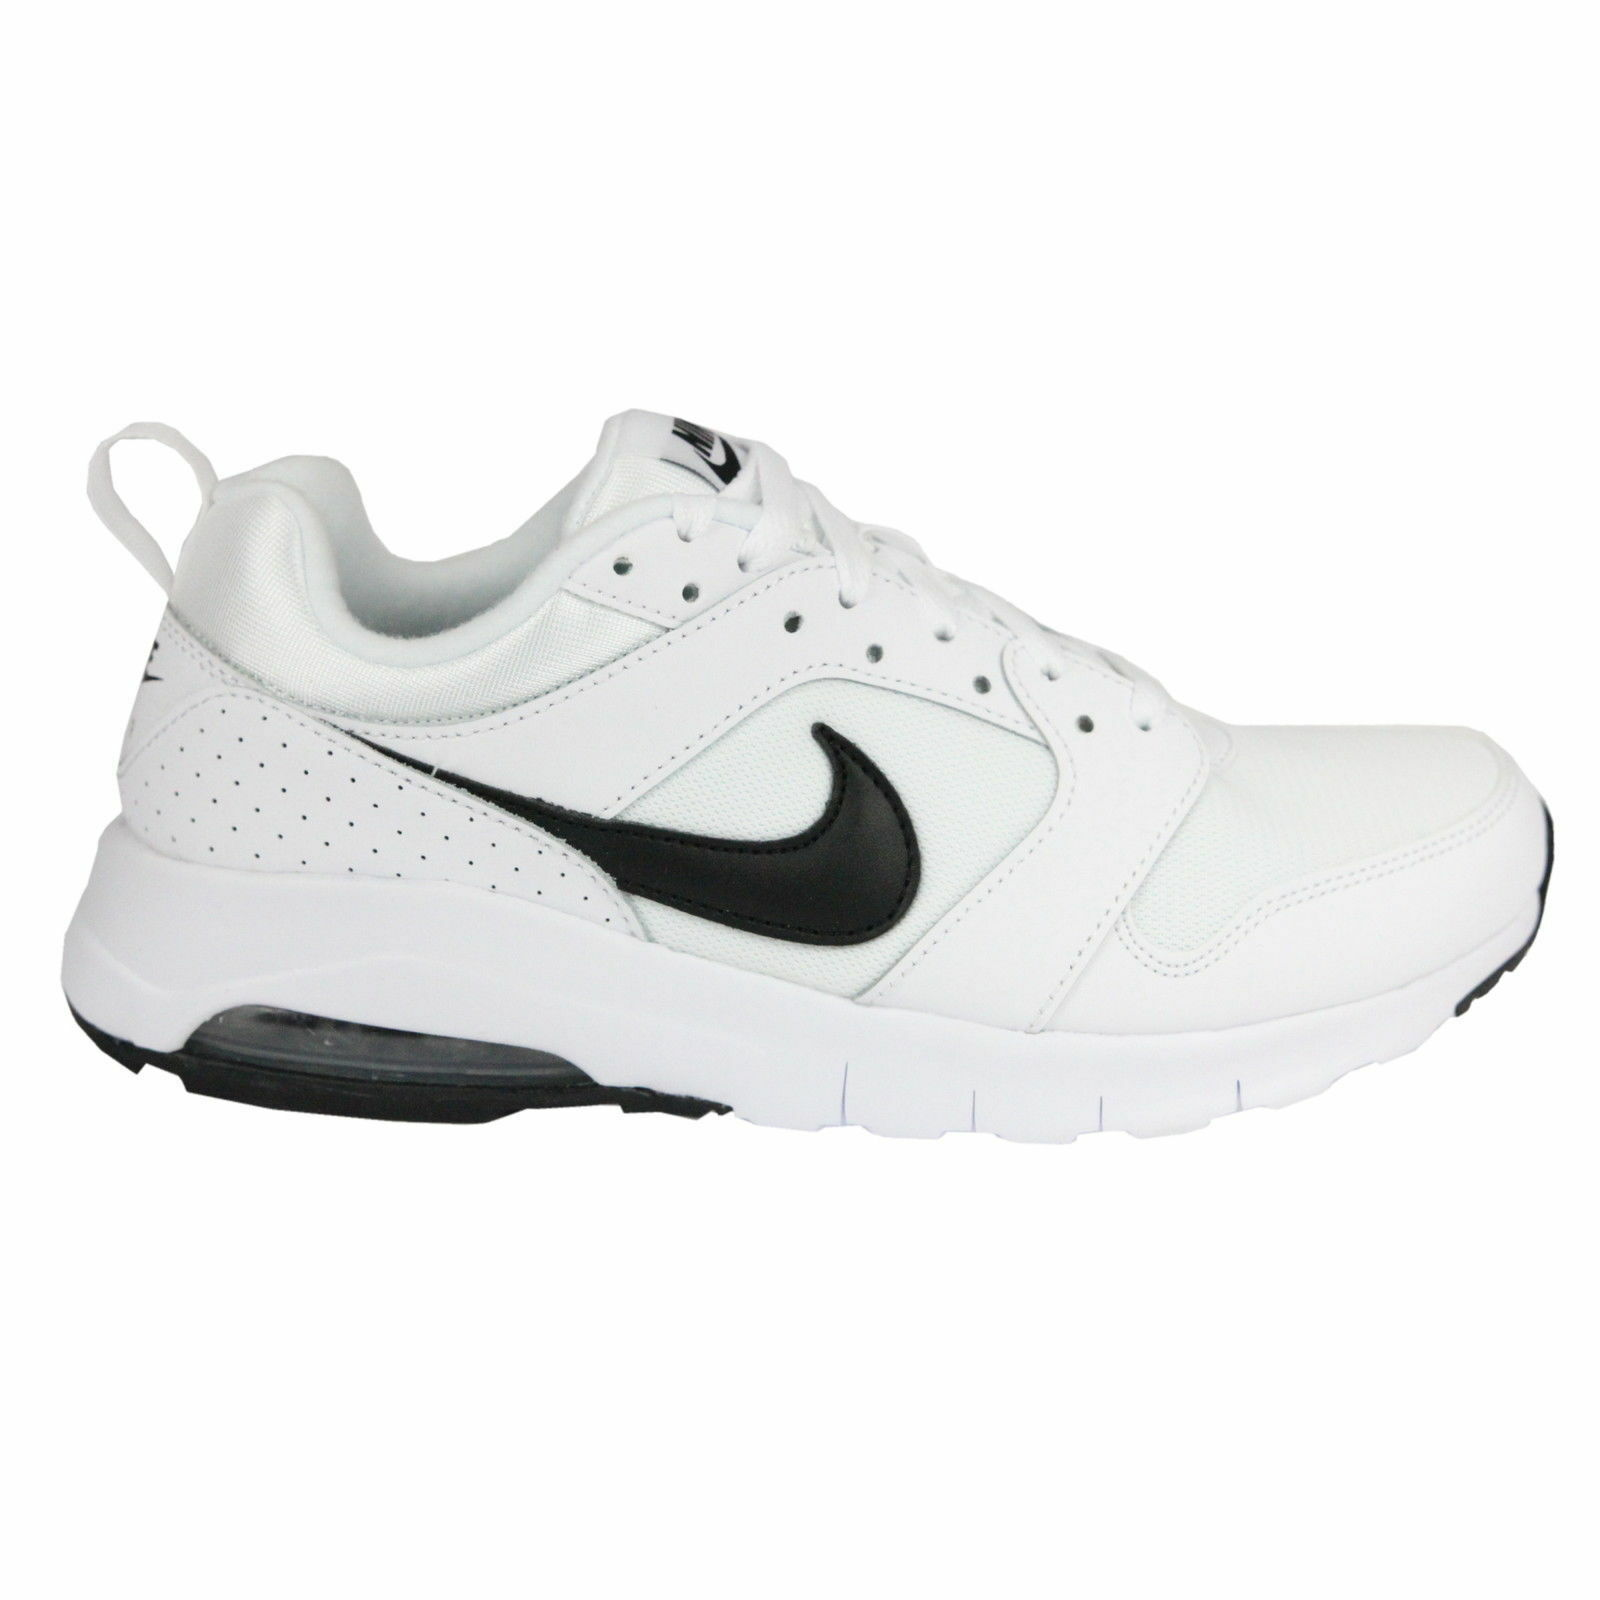 Nike Air Max Motion Price reduction Men's Athletic Shoes Price reduction NIB